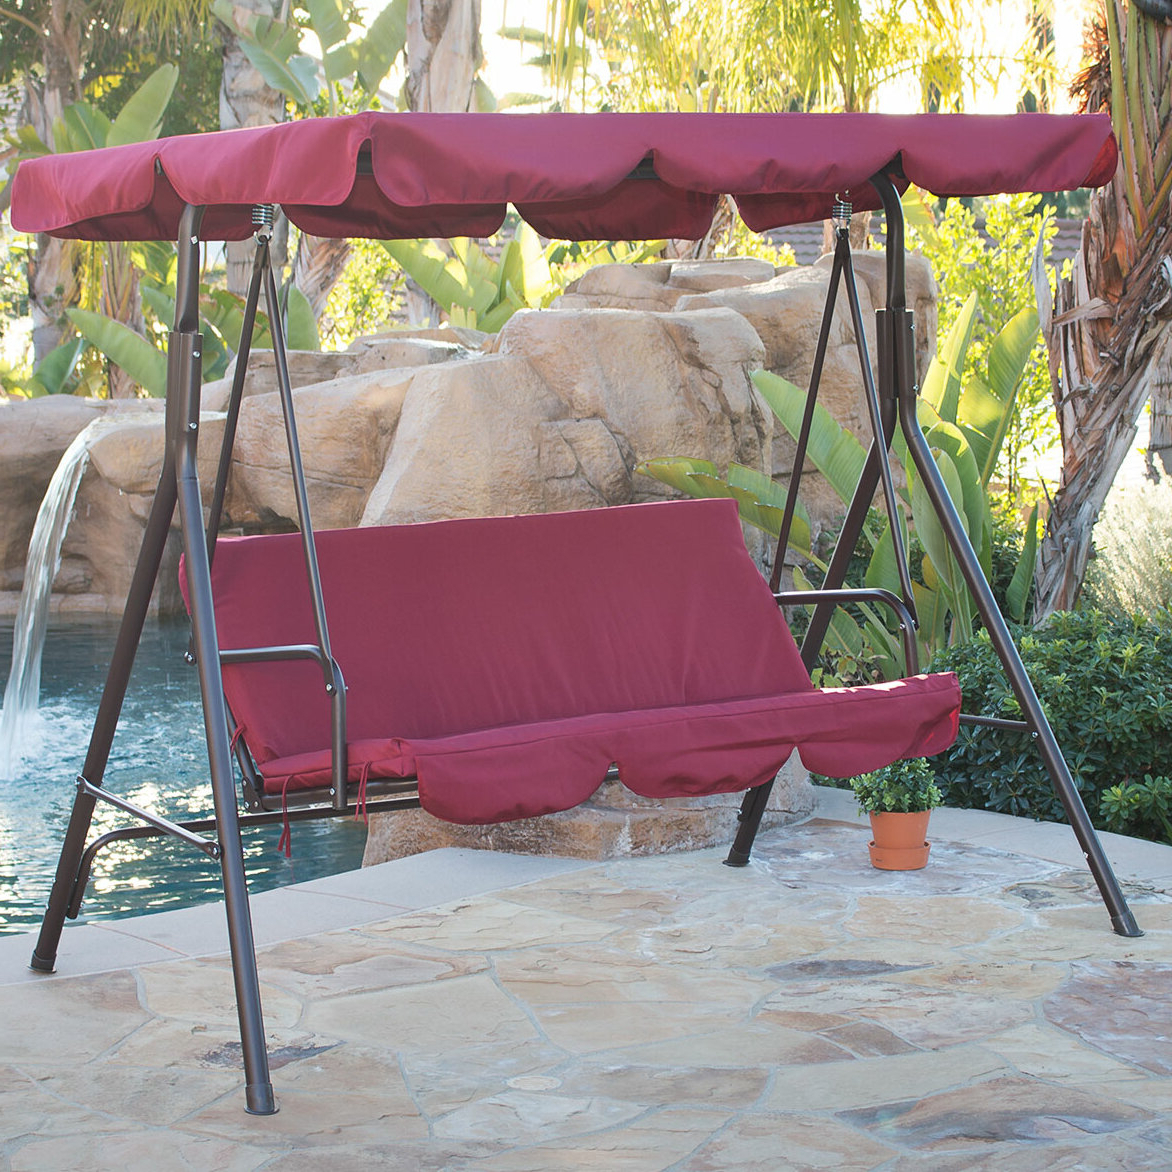 Canopy Patio Porch Swing With Stand Within Latest Freeport Park Brack Porch Swing With Stand & Reviews (View 2 of 30)